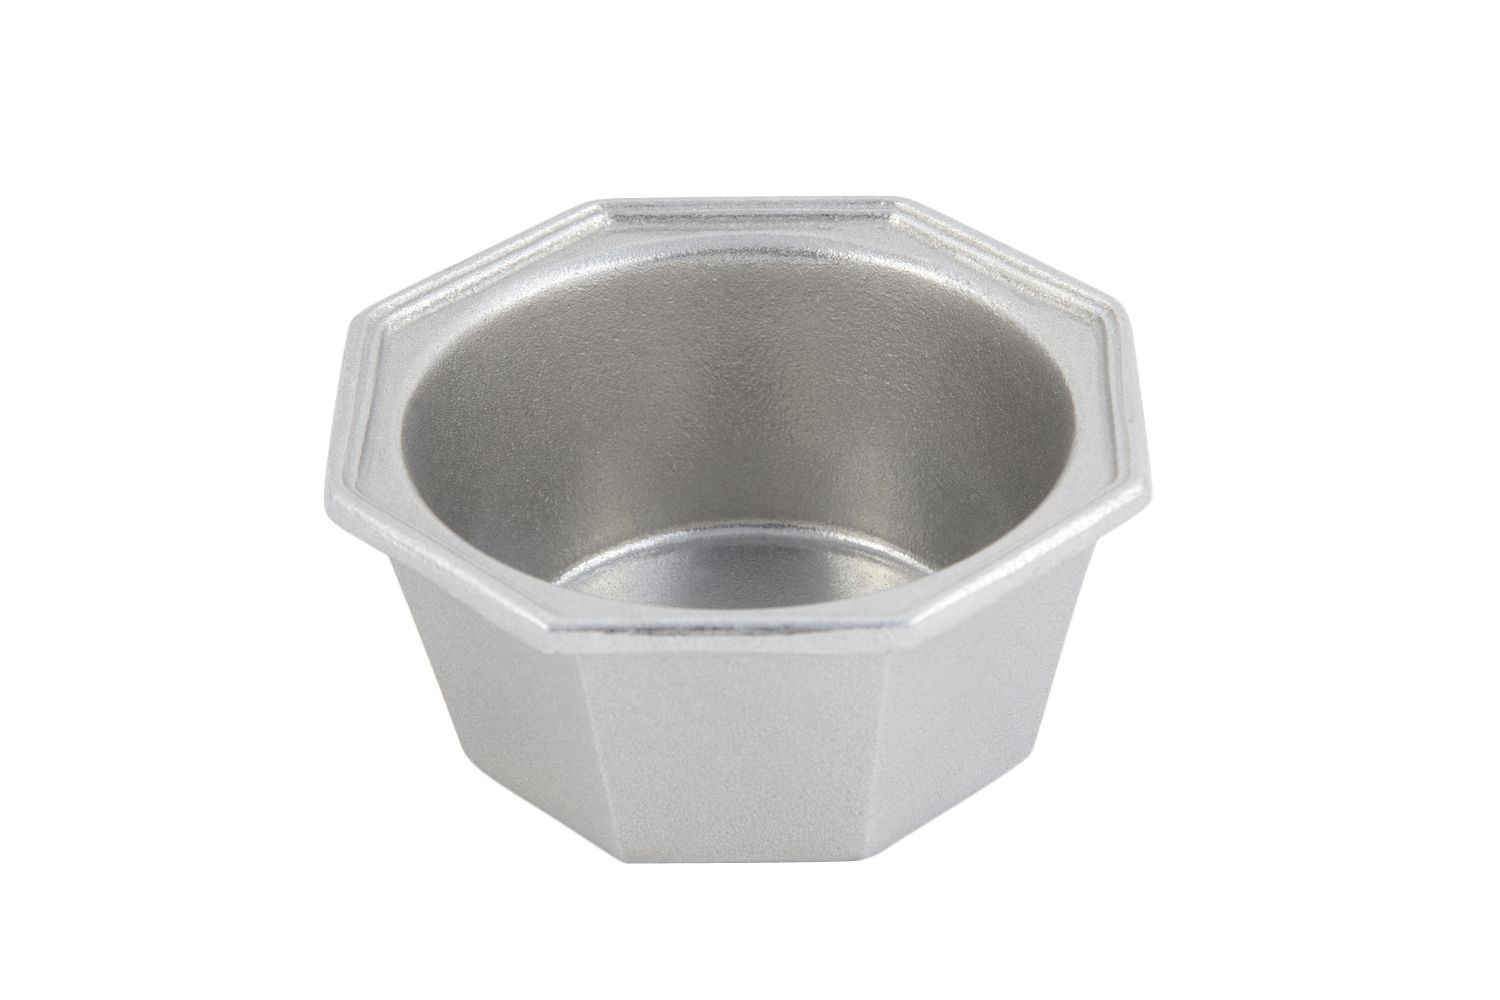 Bon Chef 3038P Octagonal Soup Bowl, Pewter Glo 12 oz., Set of 6